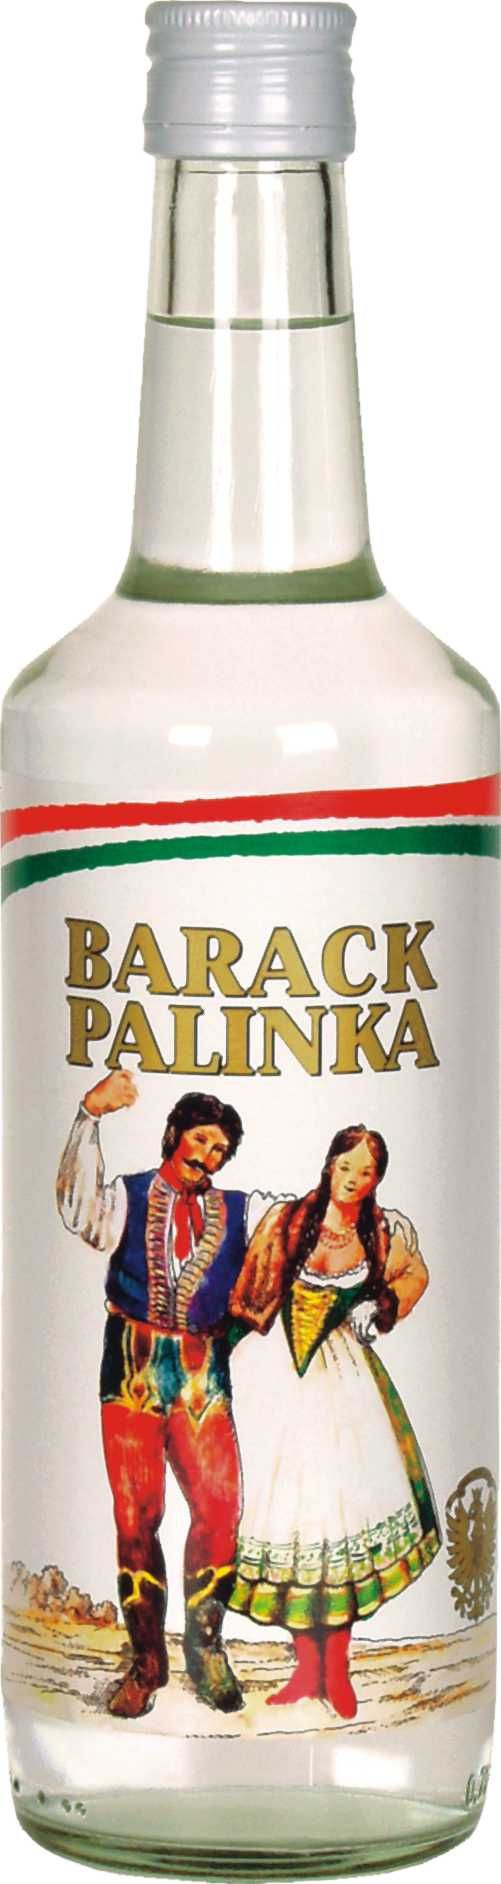 """Pálinka- a traditional fruit brandy.Under the 2008 """"Hungarian Pálinka Law"""", only fruit spirits distilled from a mash of ripe fruits produced in Hungary, mashed, distilled, matured and bottled locally can be called pálinka. Fruit spirits made from concentrates, semi-dried or dried fruit cannot legally be called pálinka. A popular saying in Hungary says: what can be used to prepare jam can also be used to produce pálinka."""